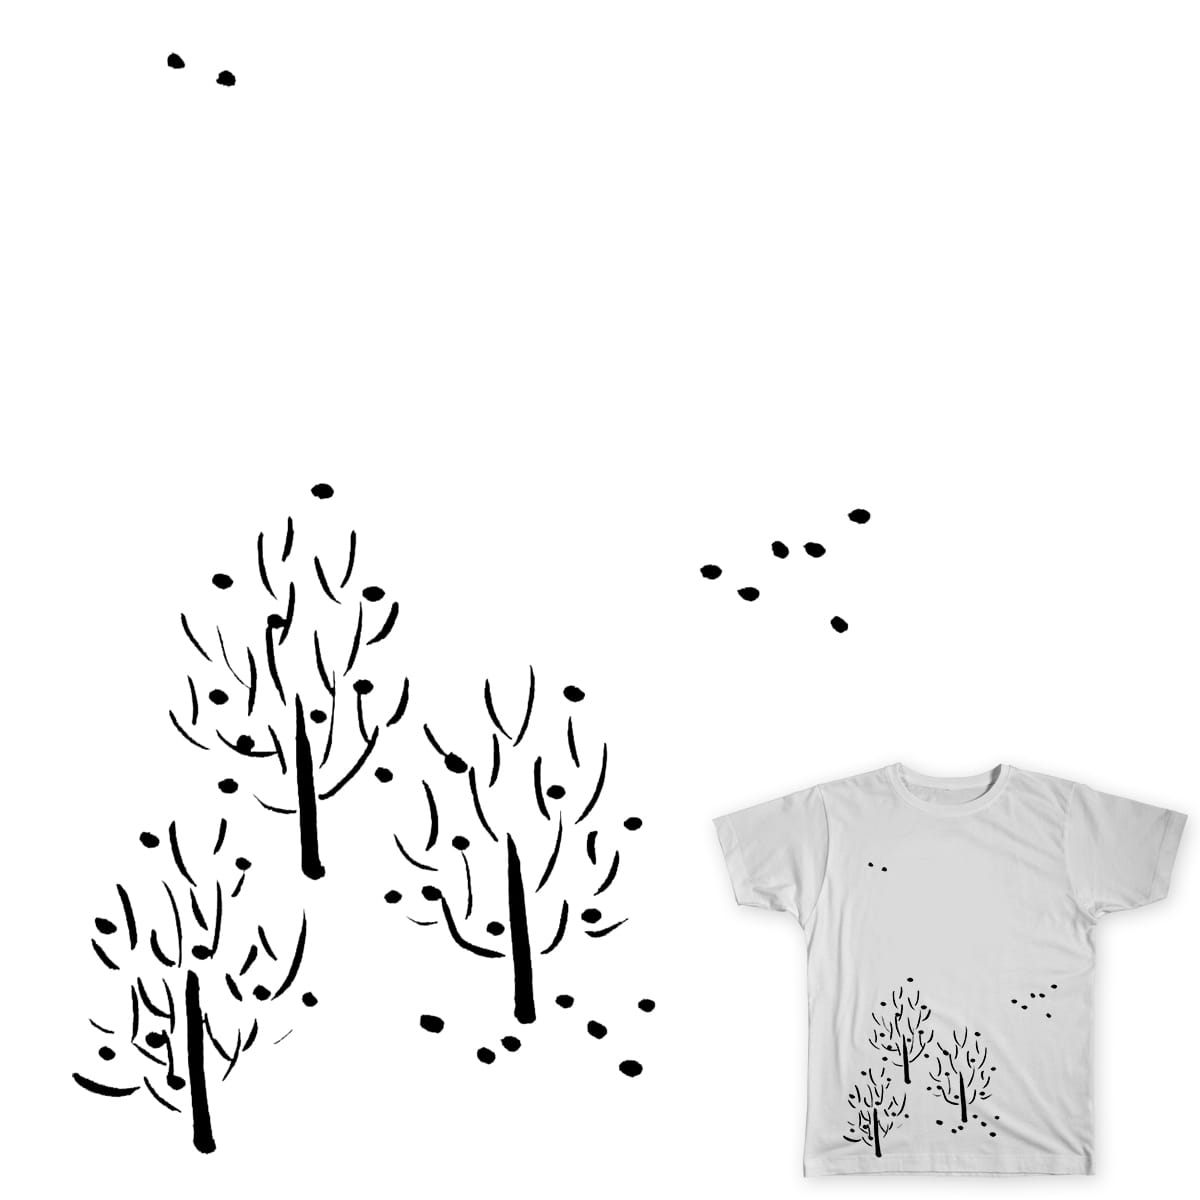 Trees by dfeng5 on Threadless